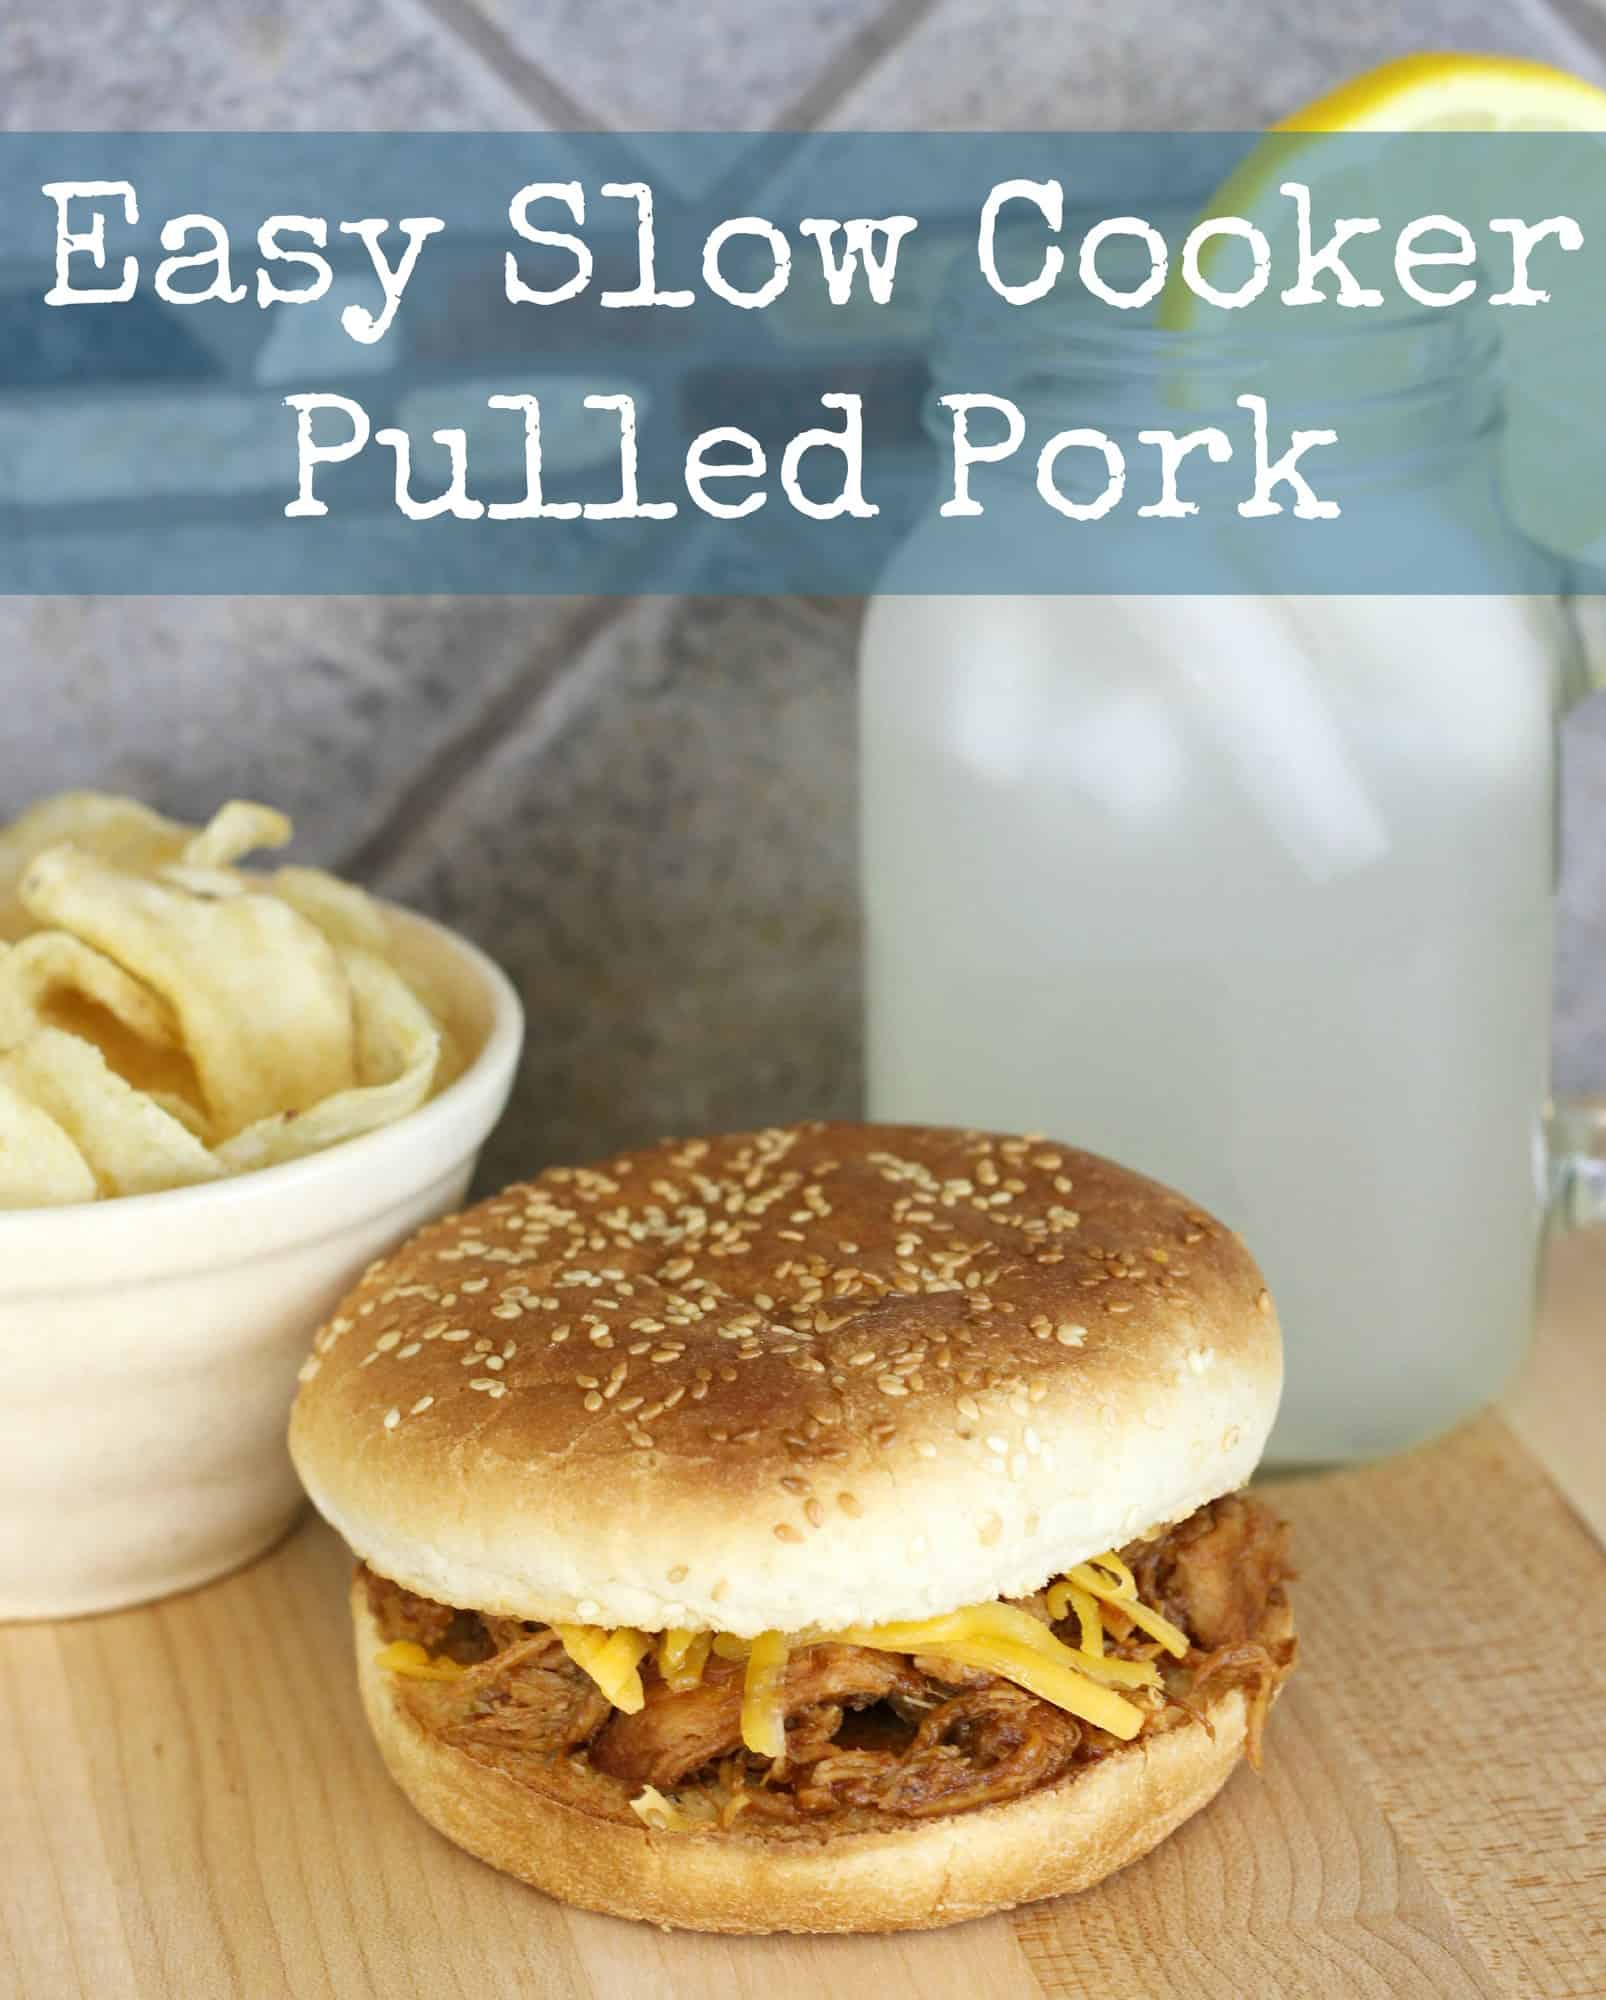 Easy Slow Cooker Pulled Pork Recipe - Little Miss Kate